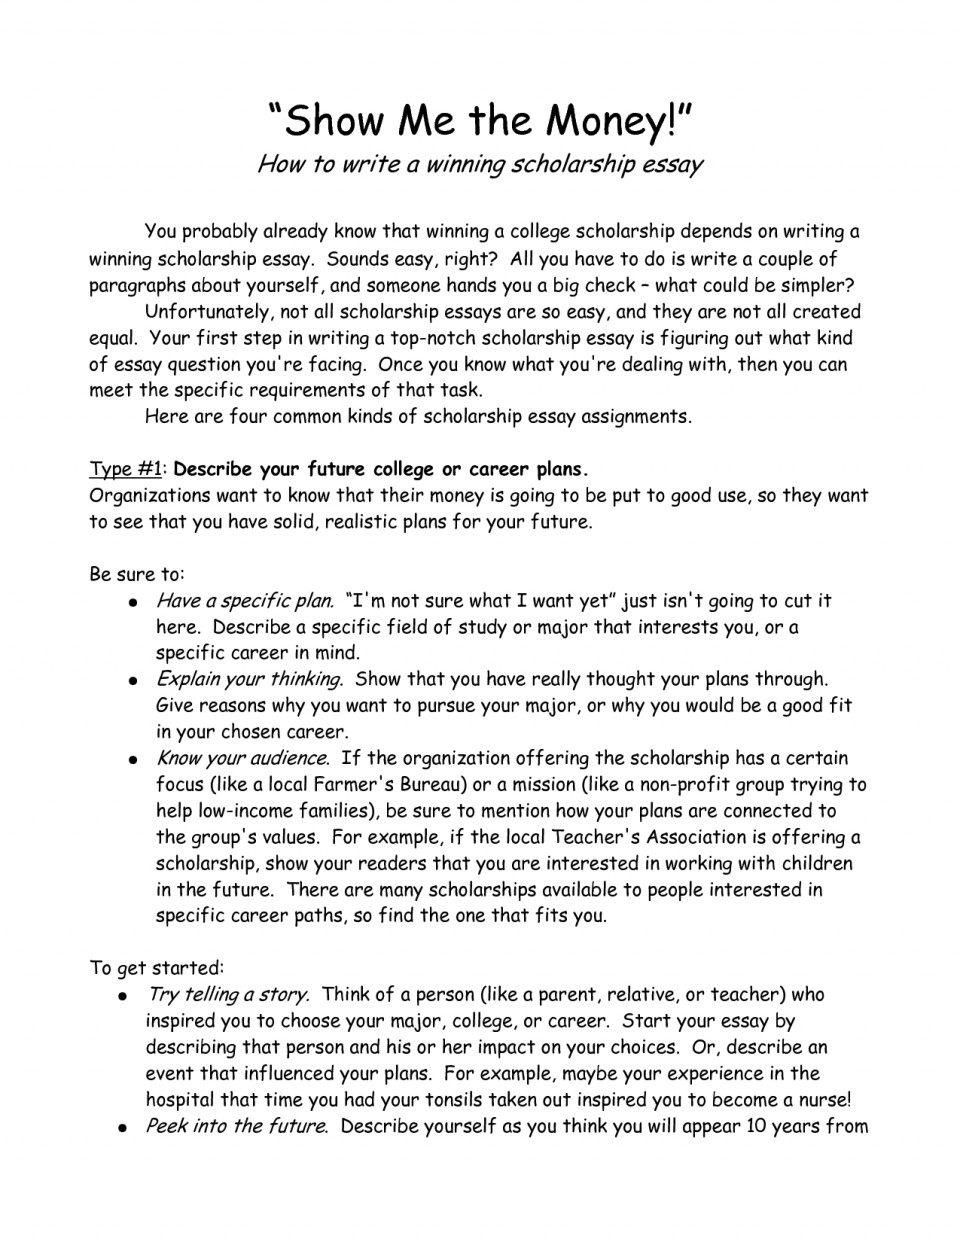 003 What To Write For Scholarship Essay Greats Targer Golden Dragon Co College Format Awesome A How Introduction That Stands Out About Your Career Goals 960